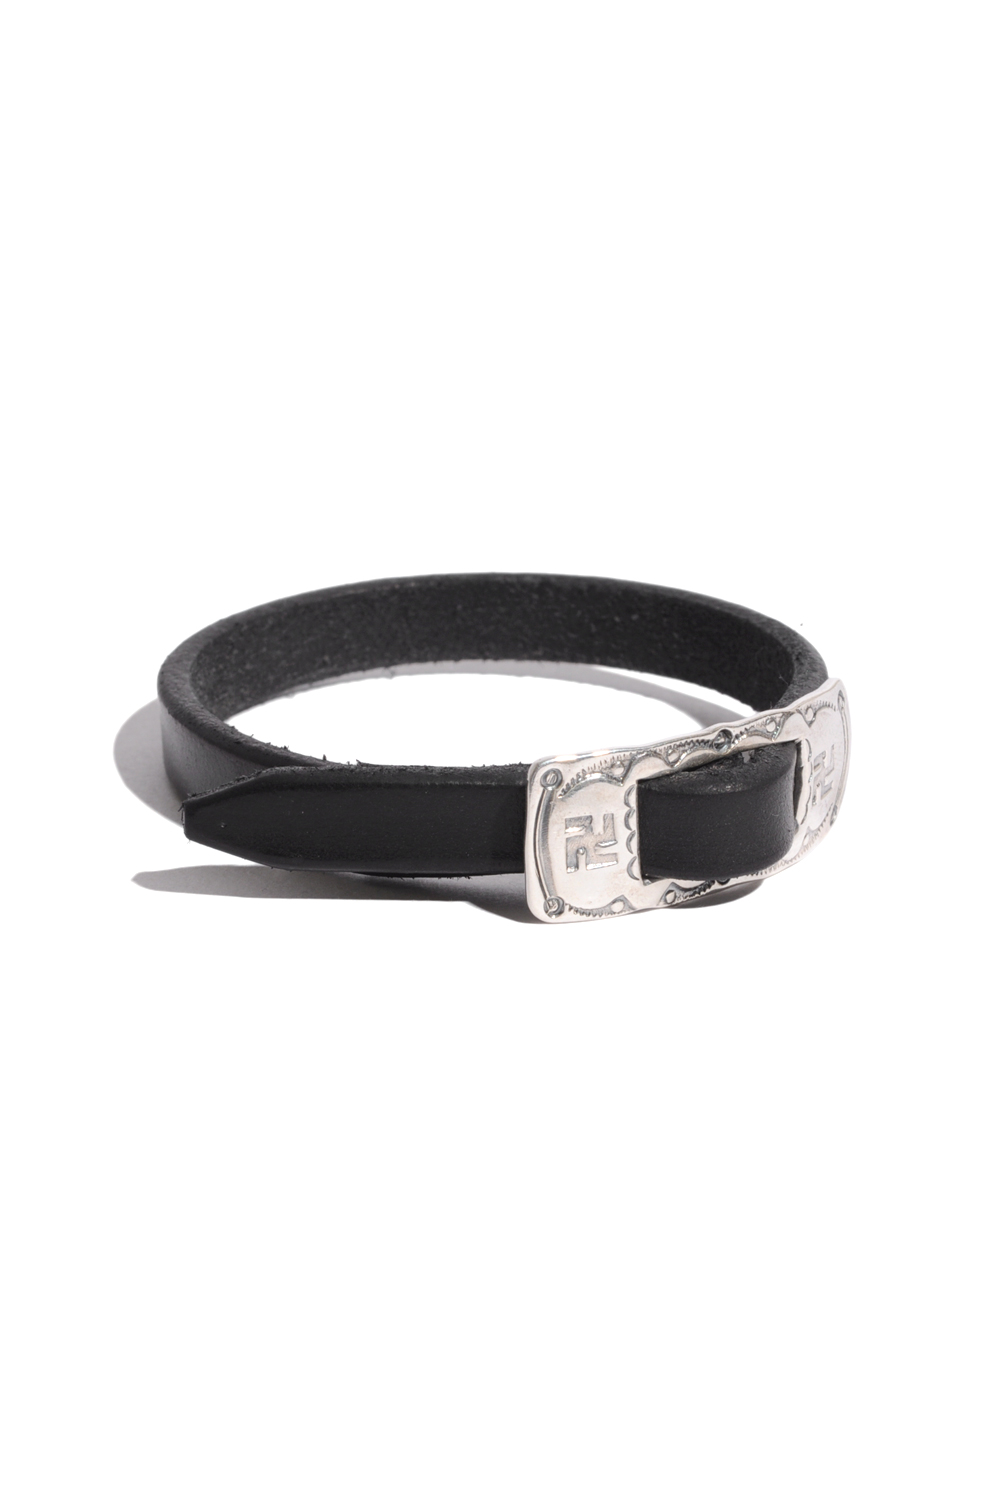 画像1: 【LARRY SMITH】BUCKLE LEATHER BRACELET